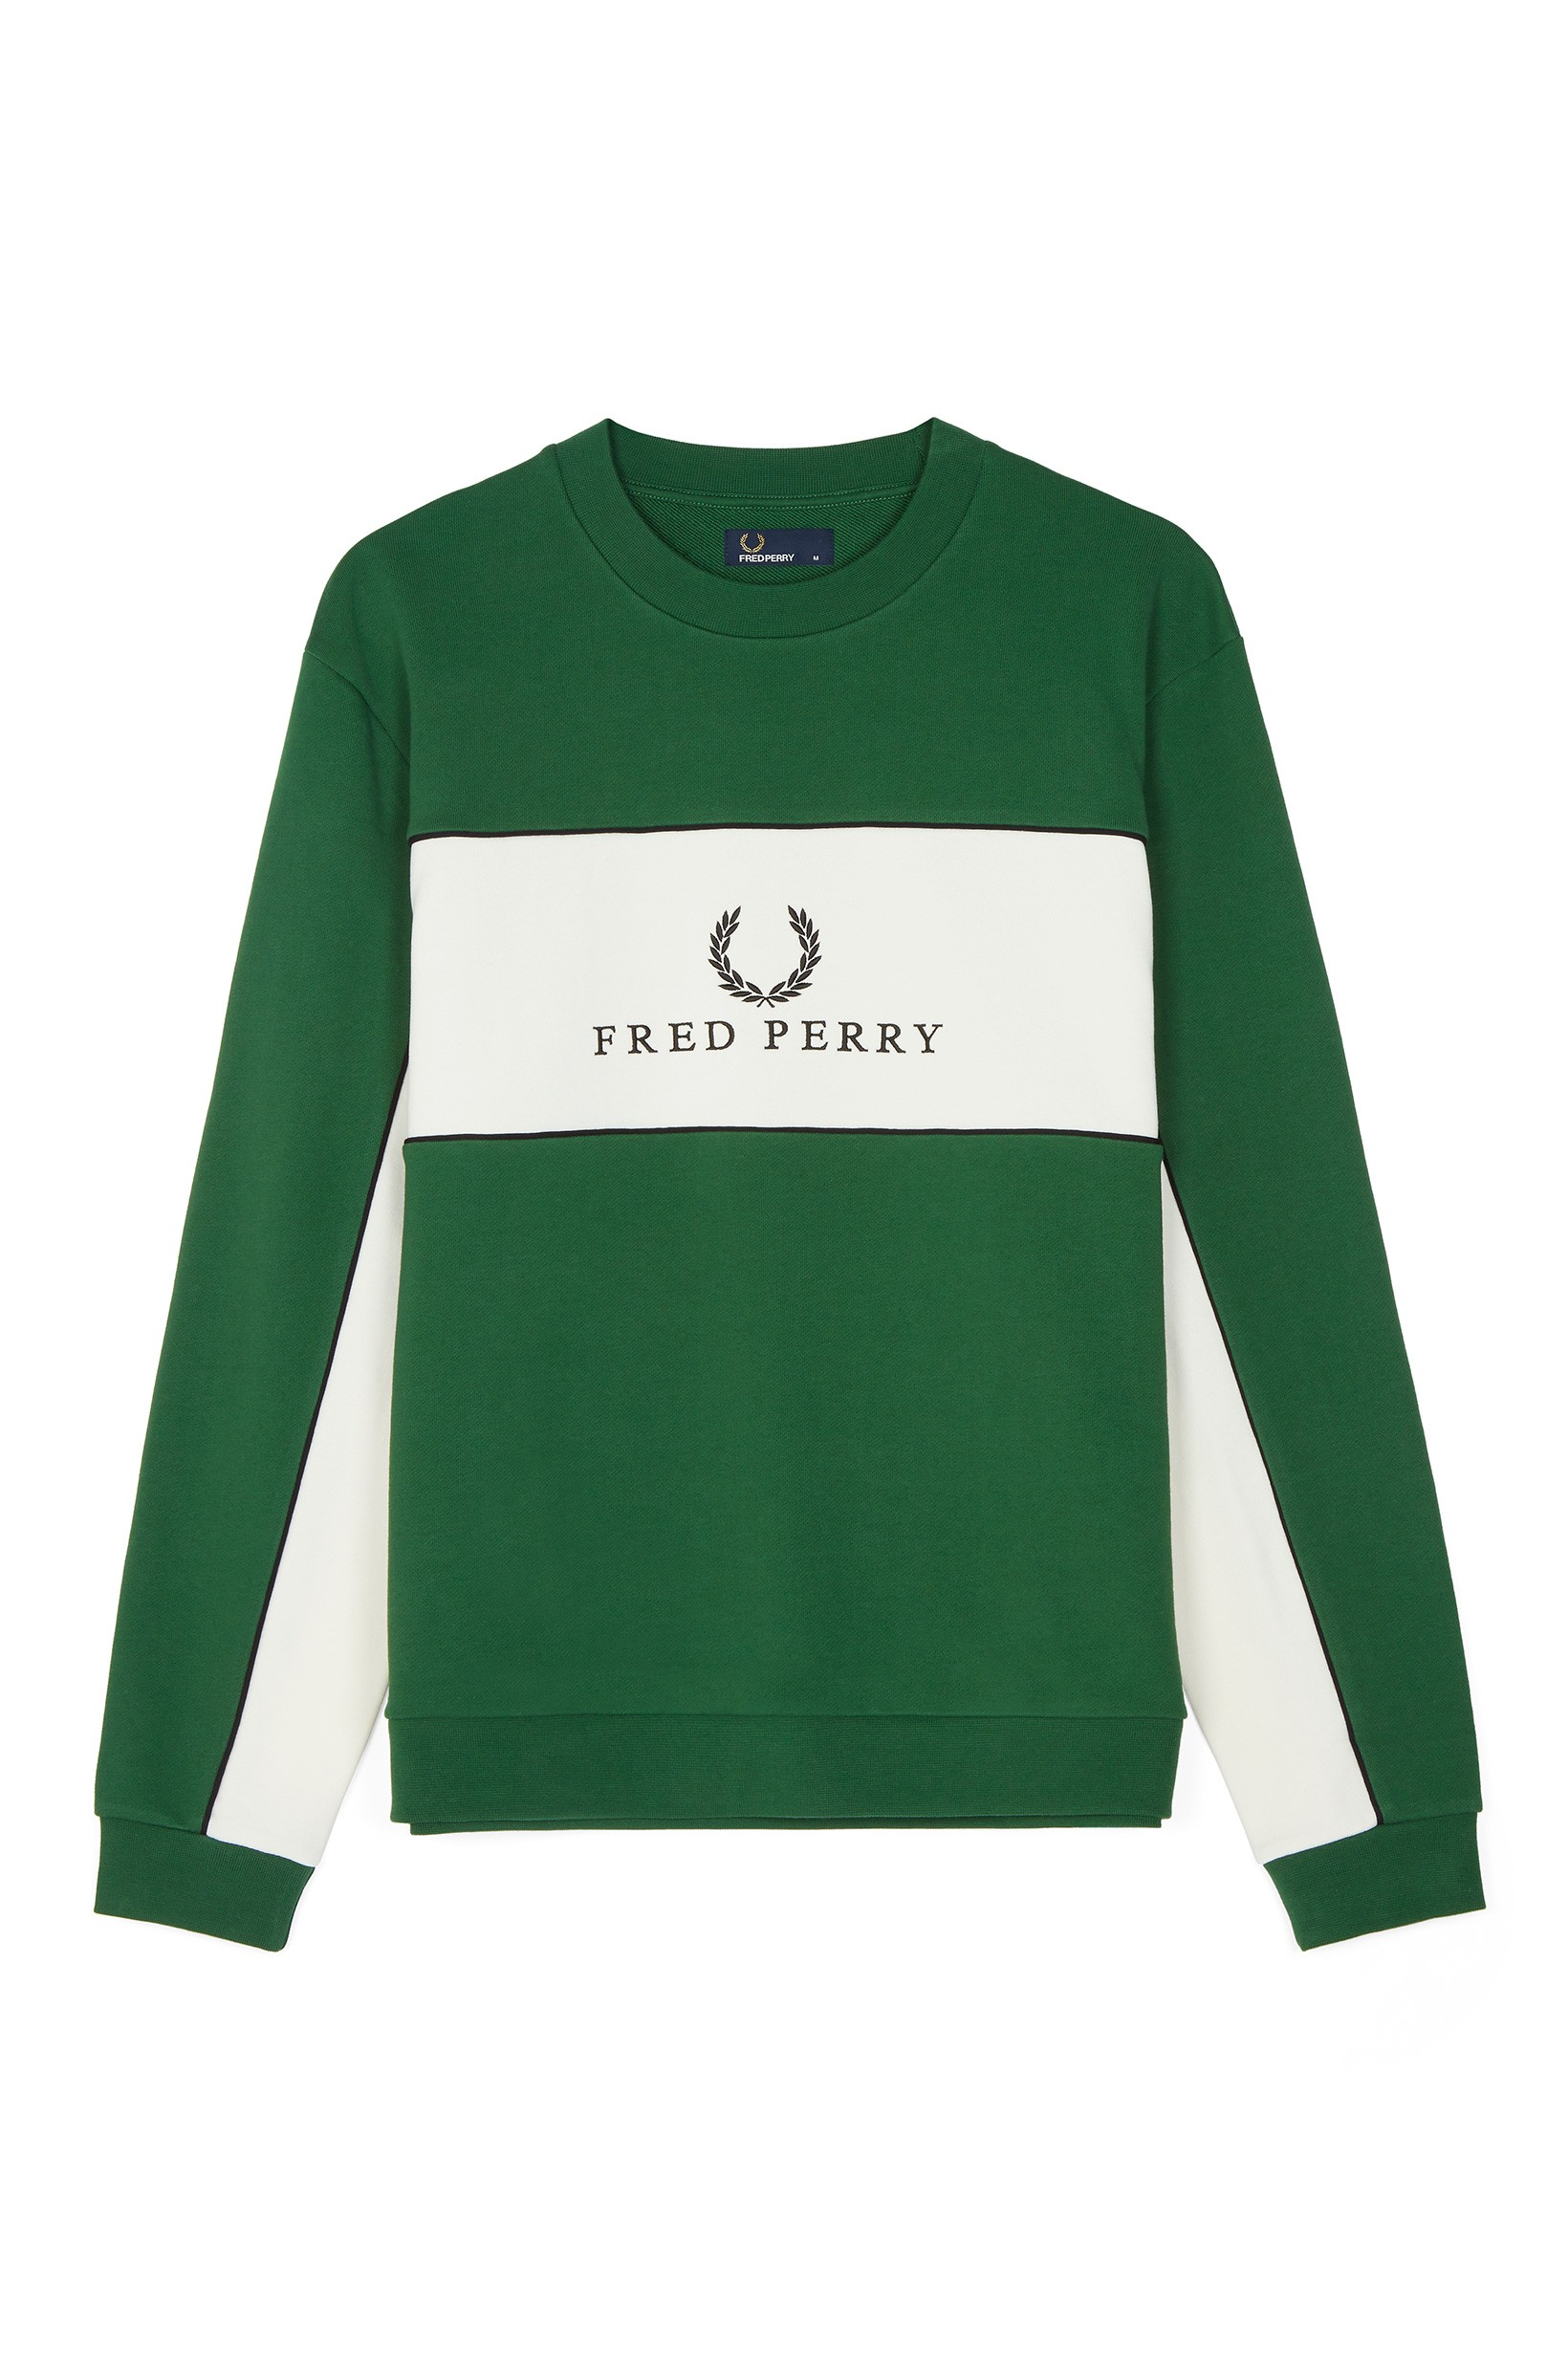 Fred Perry Tartan Green Sports Authentic Piped Sweatshirt